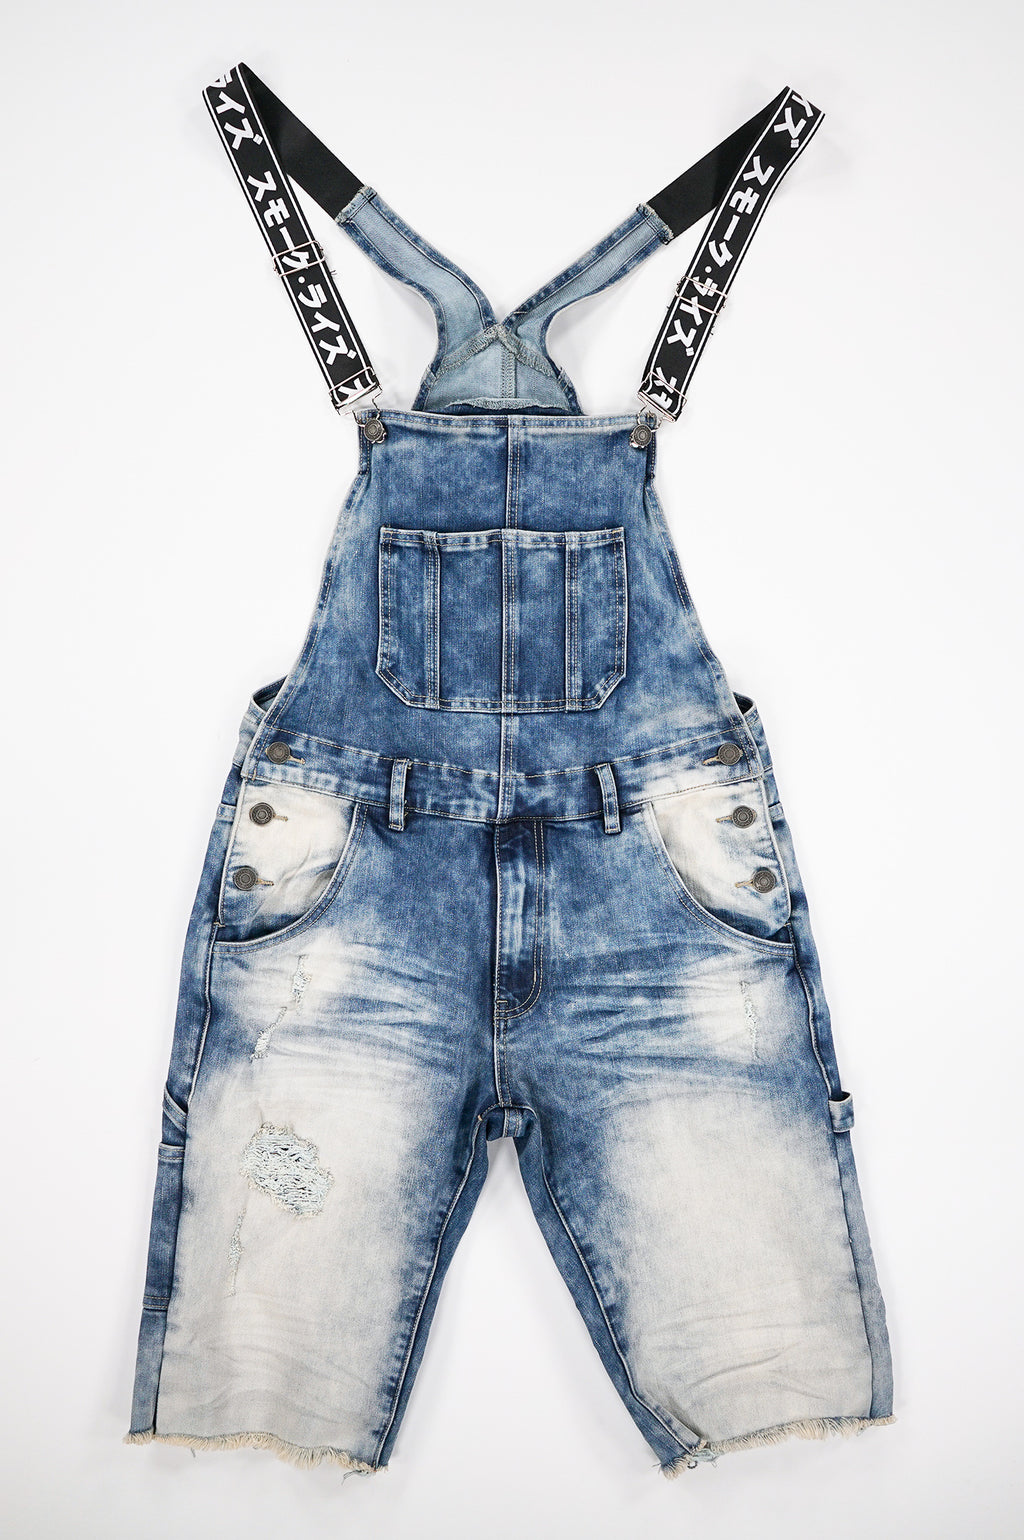 Aao Fashion Men Overall Denim Shorts